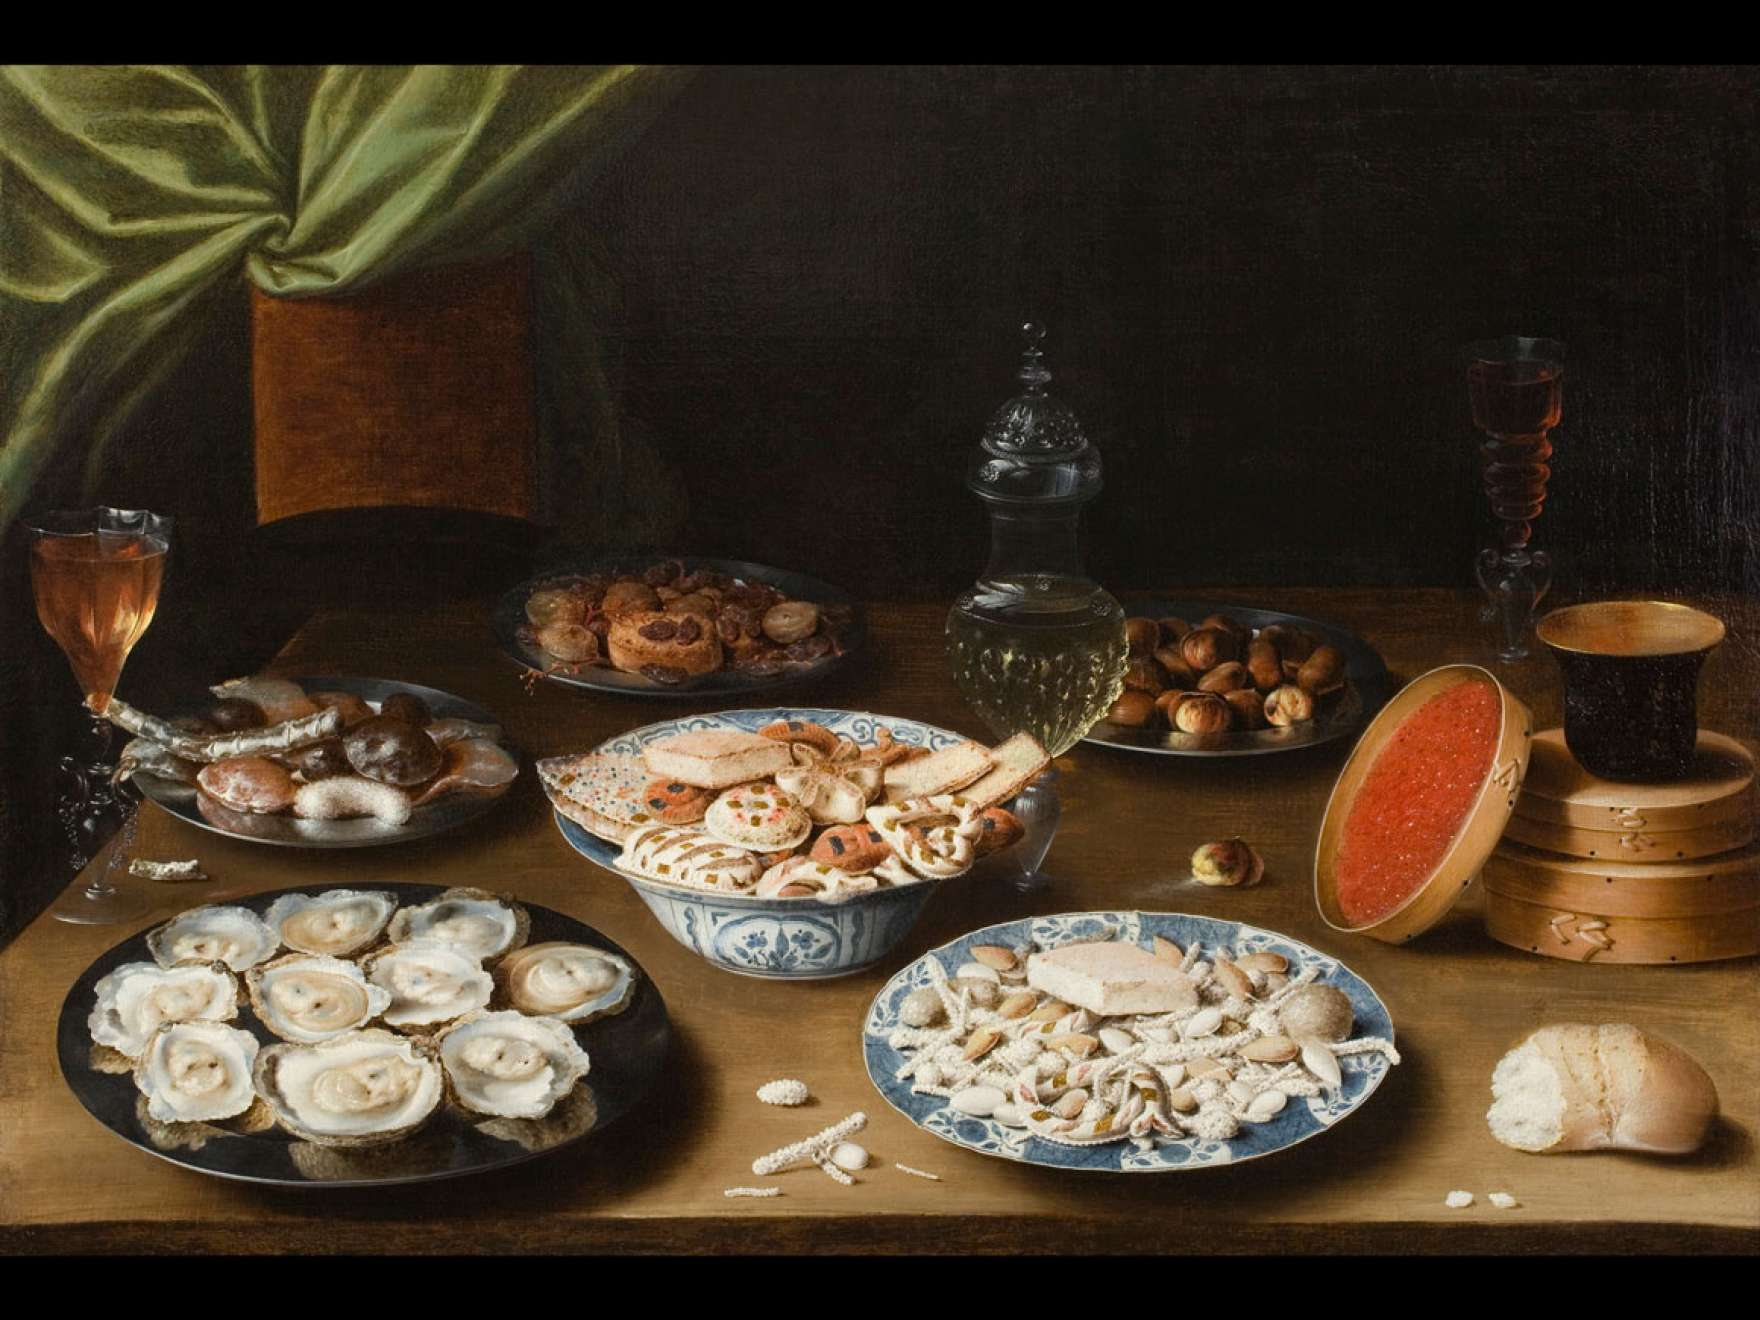 Osias Beert's painting, Still Life with Various Vessels on a Table